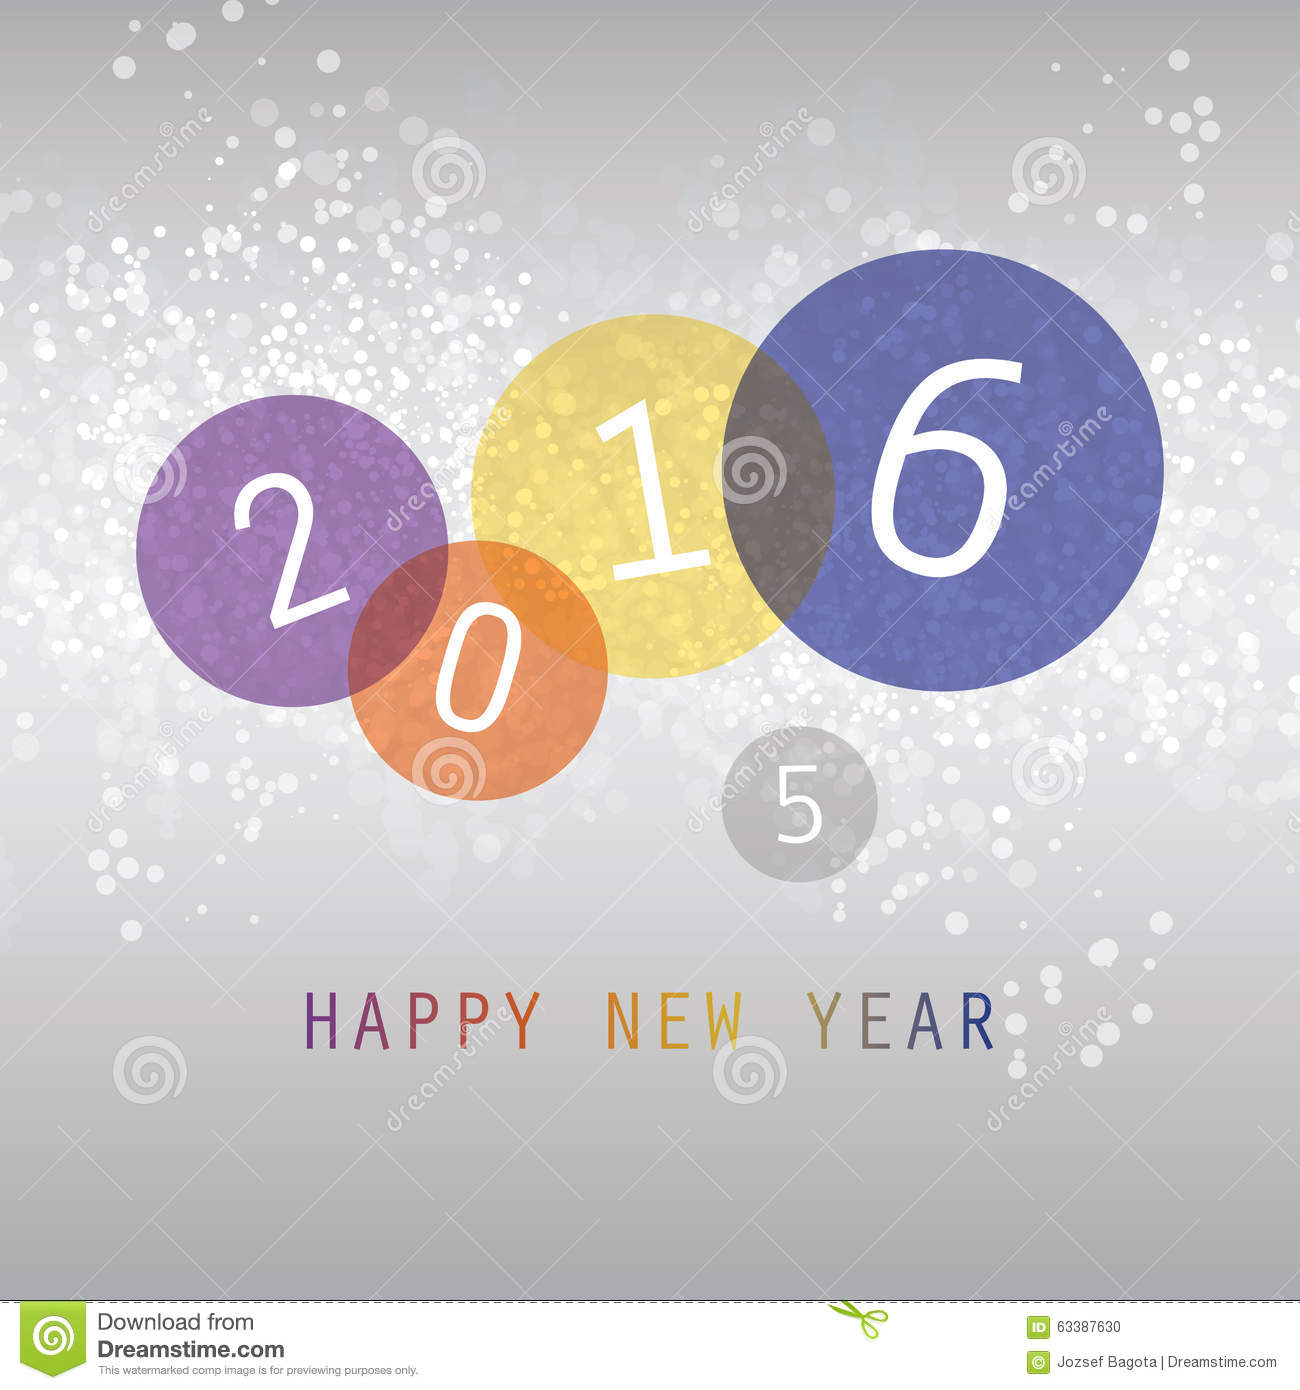 best wishes colorful abstract modern style happy new year greeting card cover or background